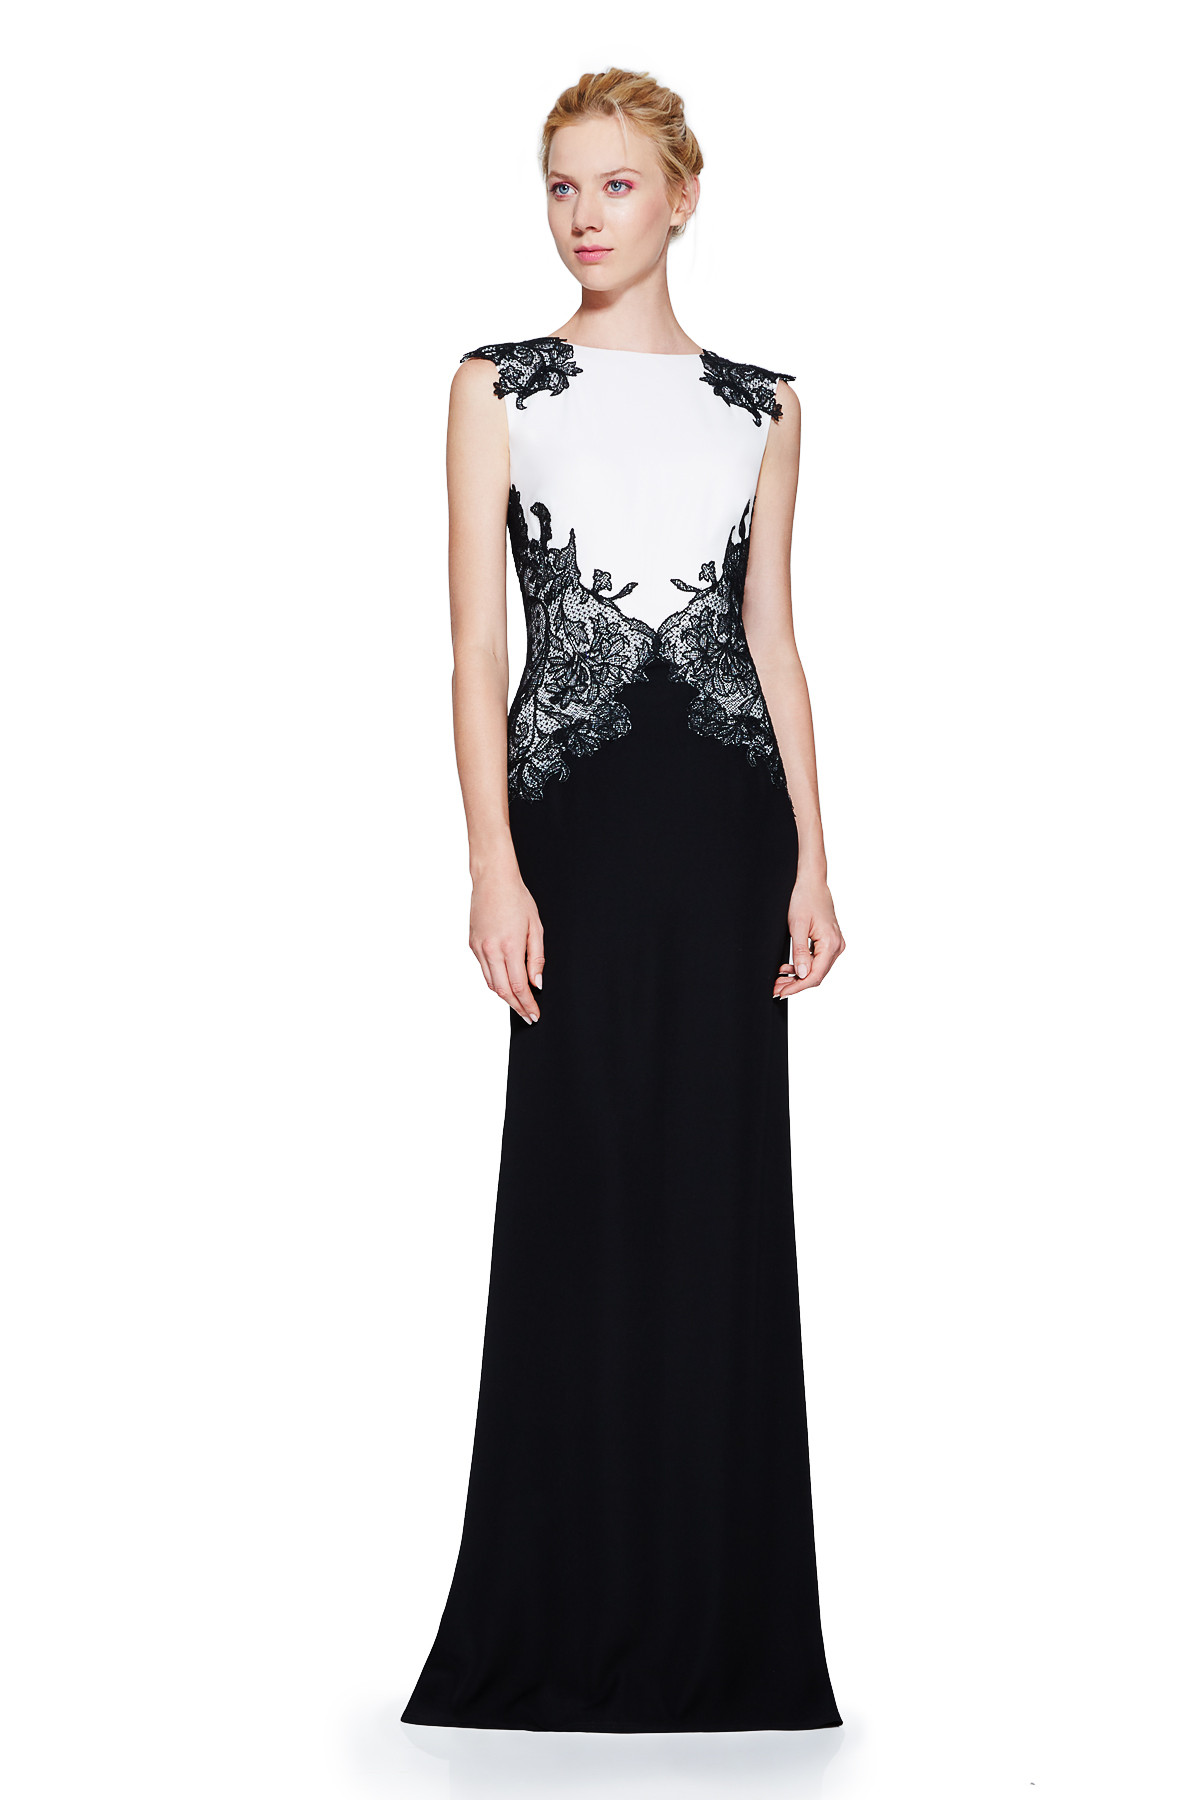 Trendy Mother Of The Bride: Designer Gowns & Dresses • Très Chic